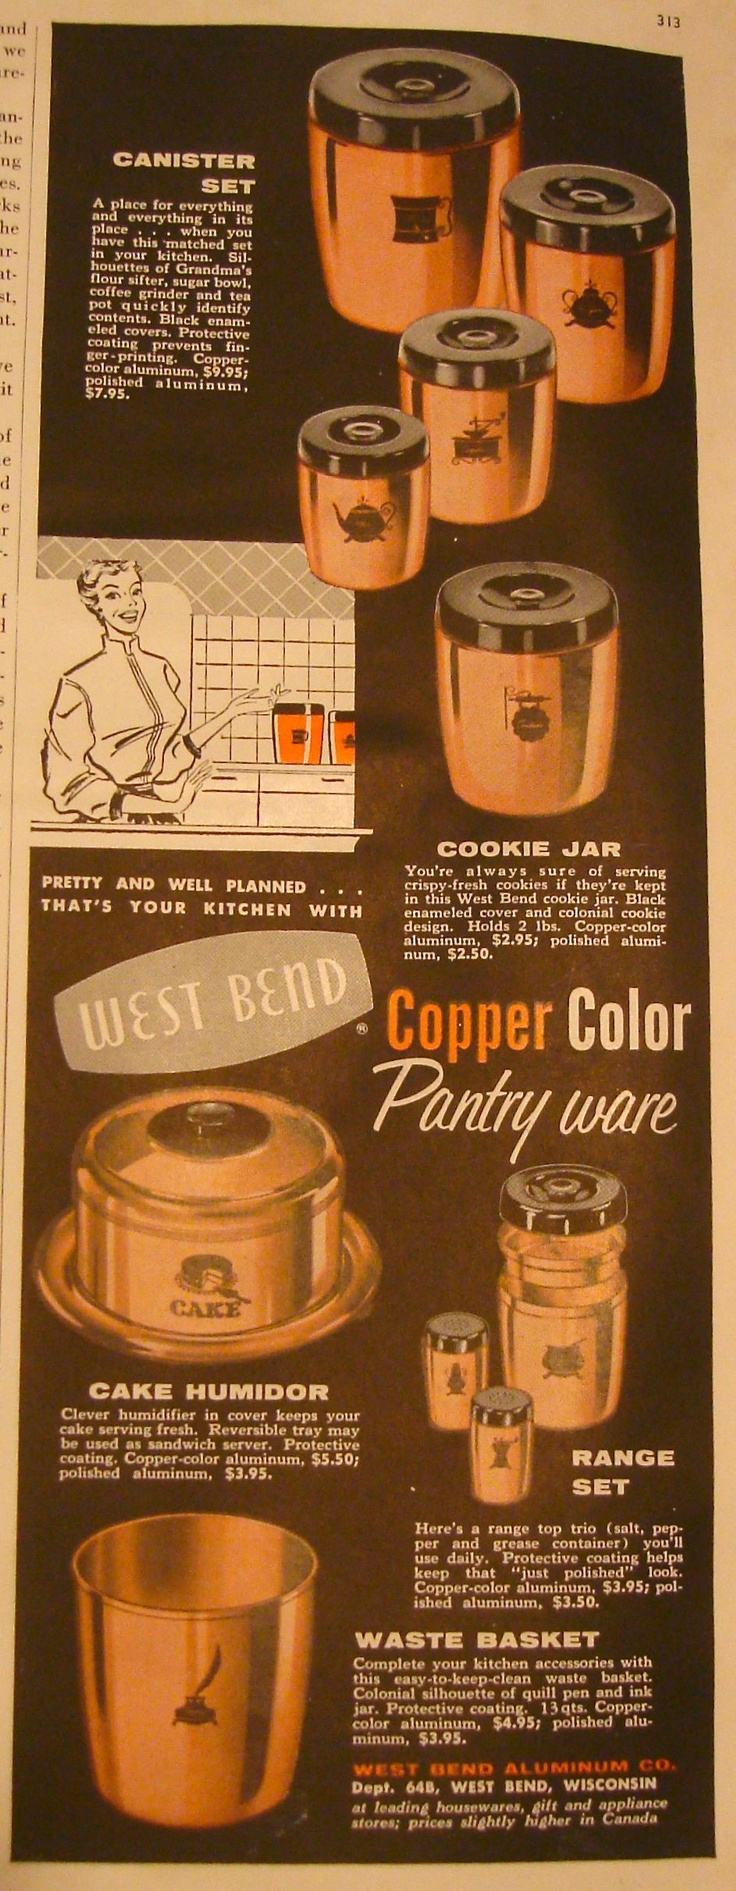 38 best west bend pantry ware images on pinterest pantry